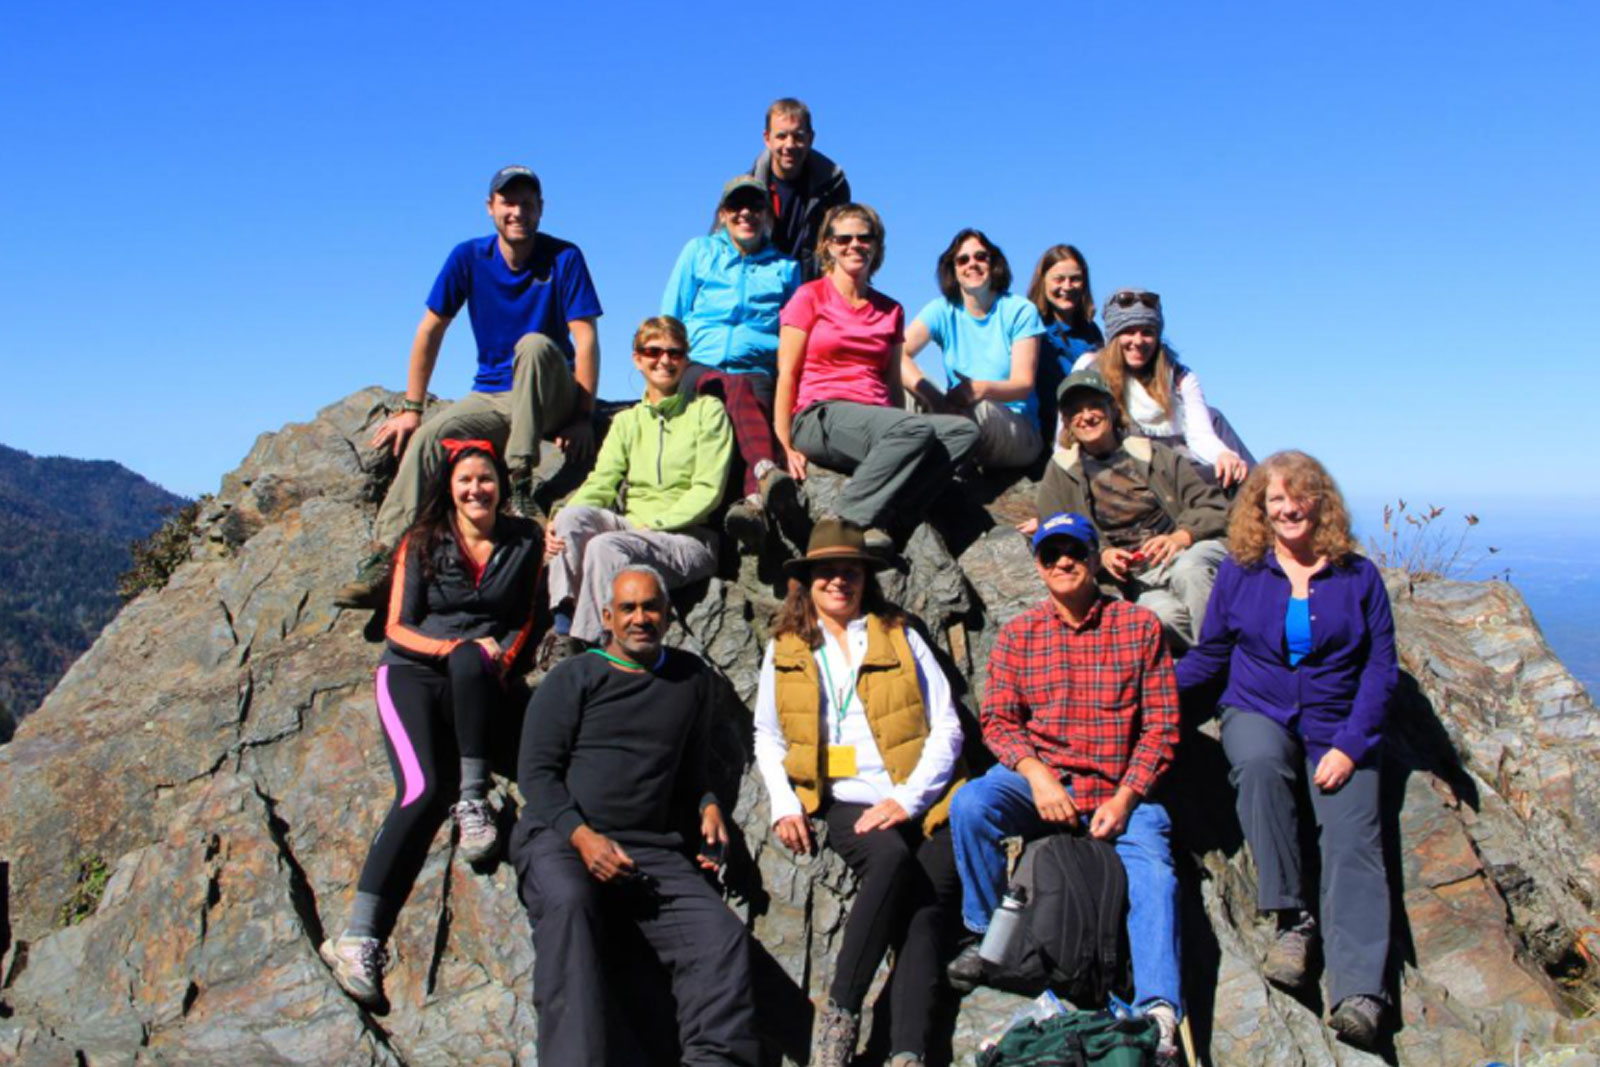 Members of a Sierra Club hiking trip pose for a photo